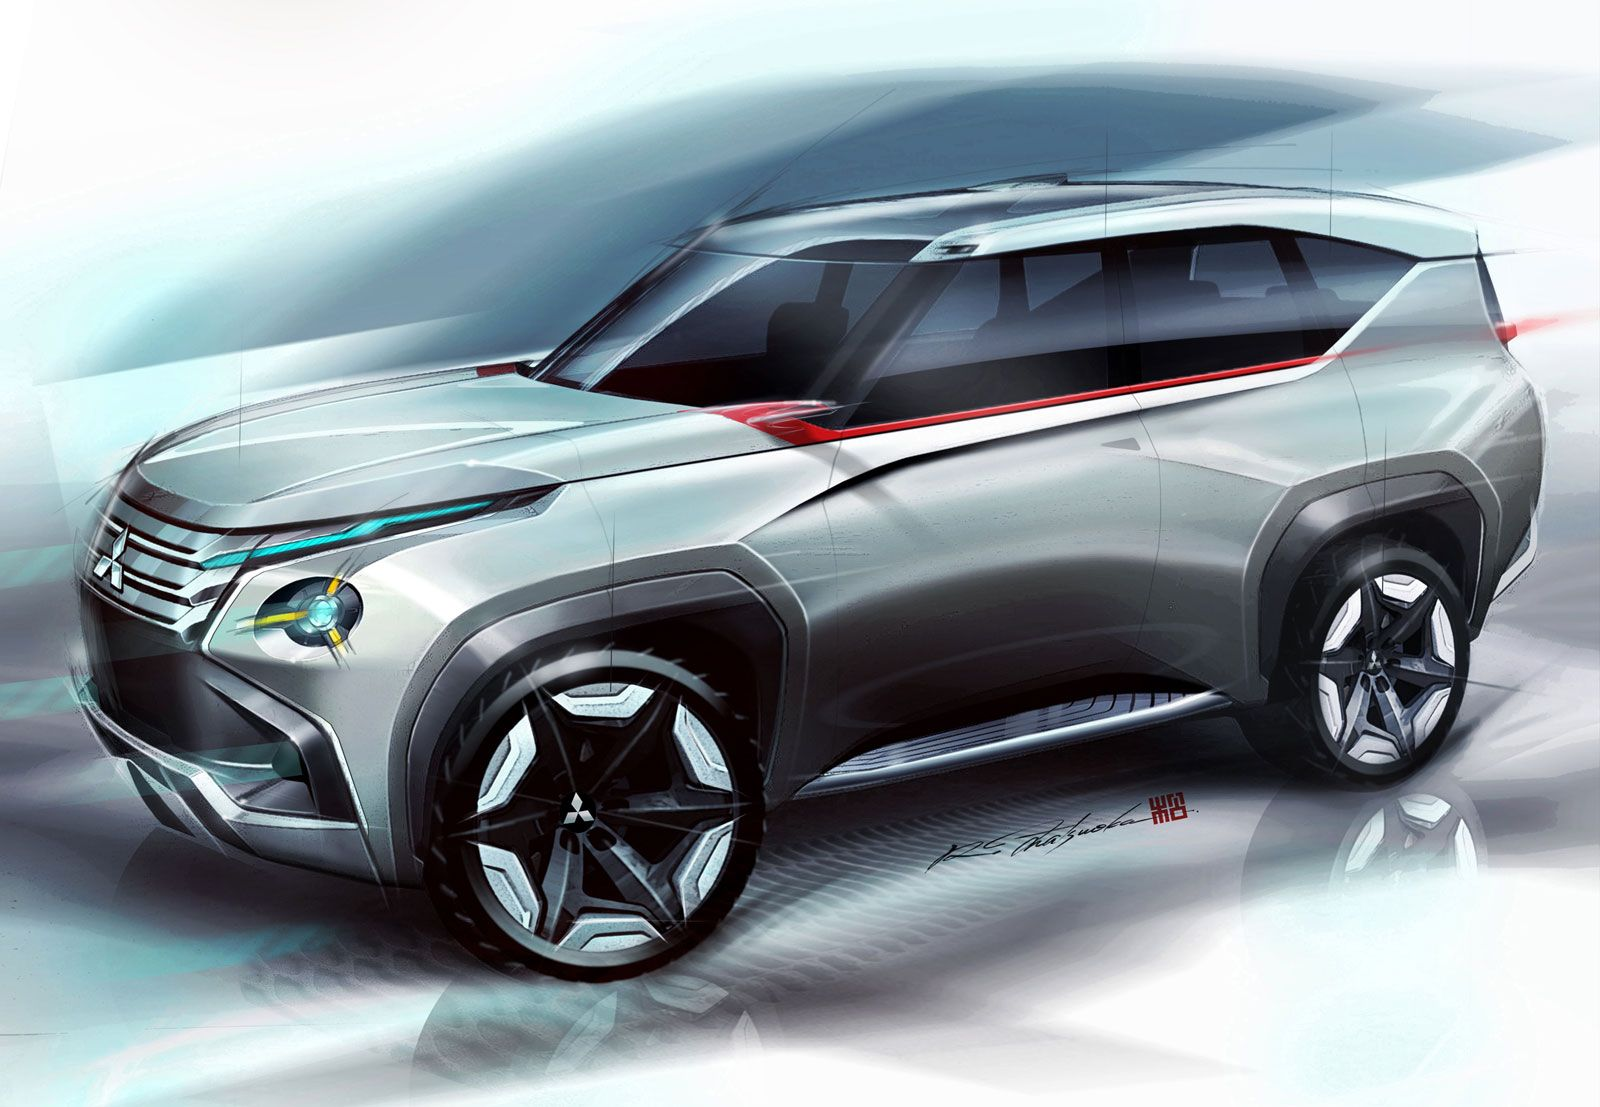 Mitsubishi Concept GCPHEV Design Sketch Car Body